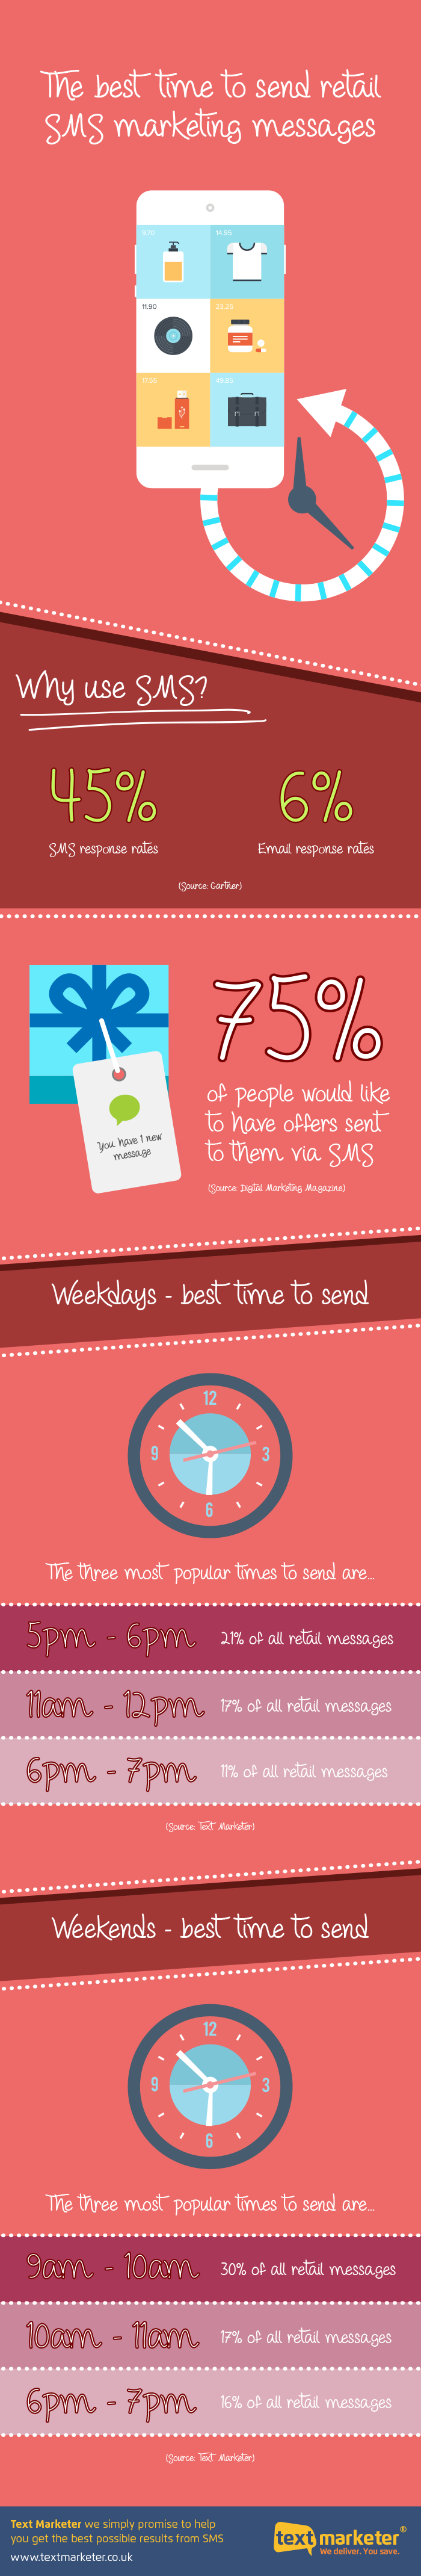 Retail SMS Marketing – The Best Time to Send Your SMS Campaign [Infographic]